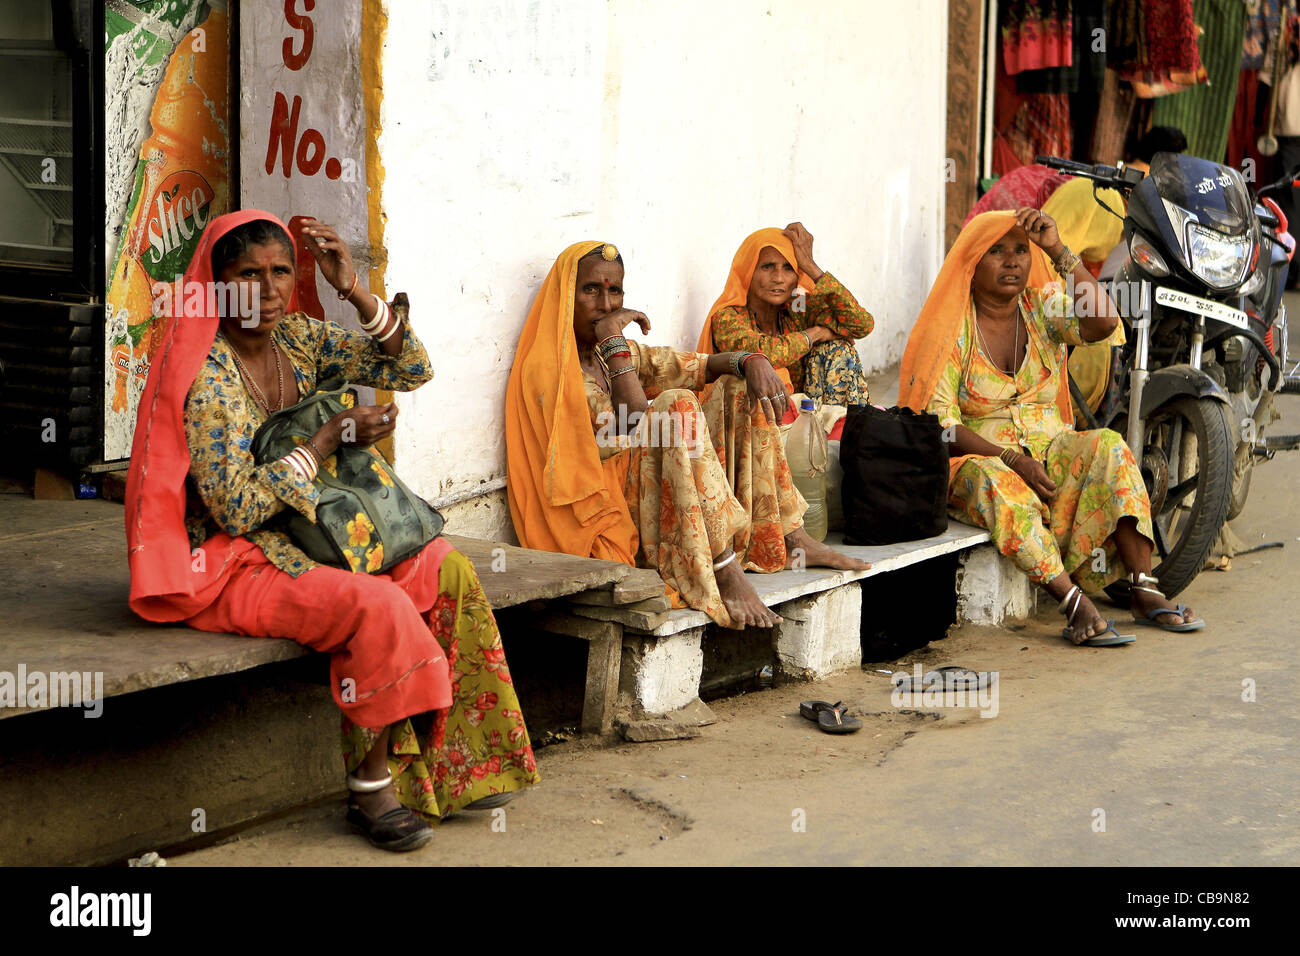 392b45ba67 Indian women in traditional dress resting .Pushkar,Rajasthan,India - Stock  Image